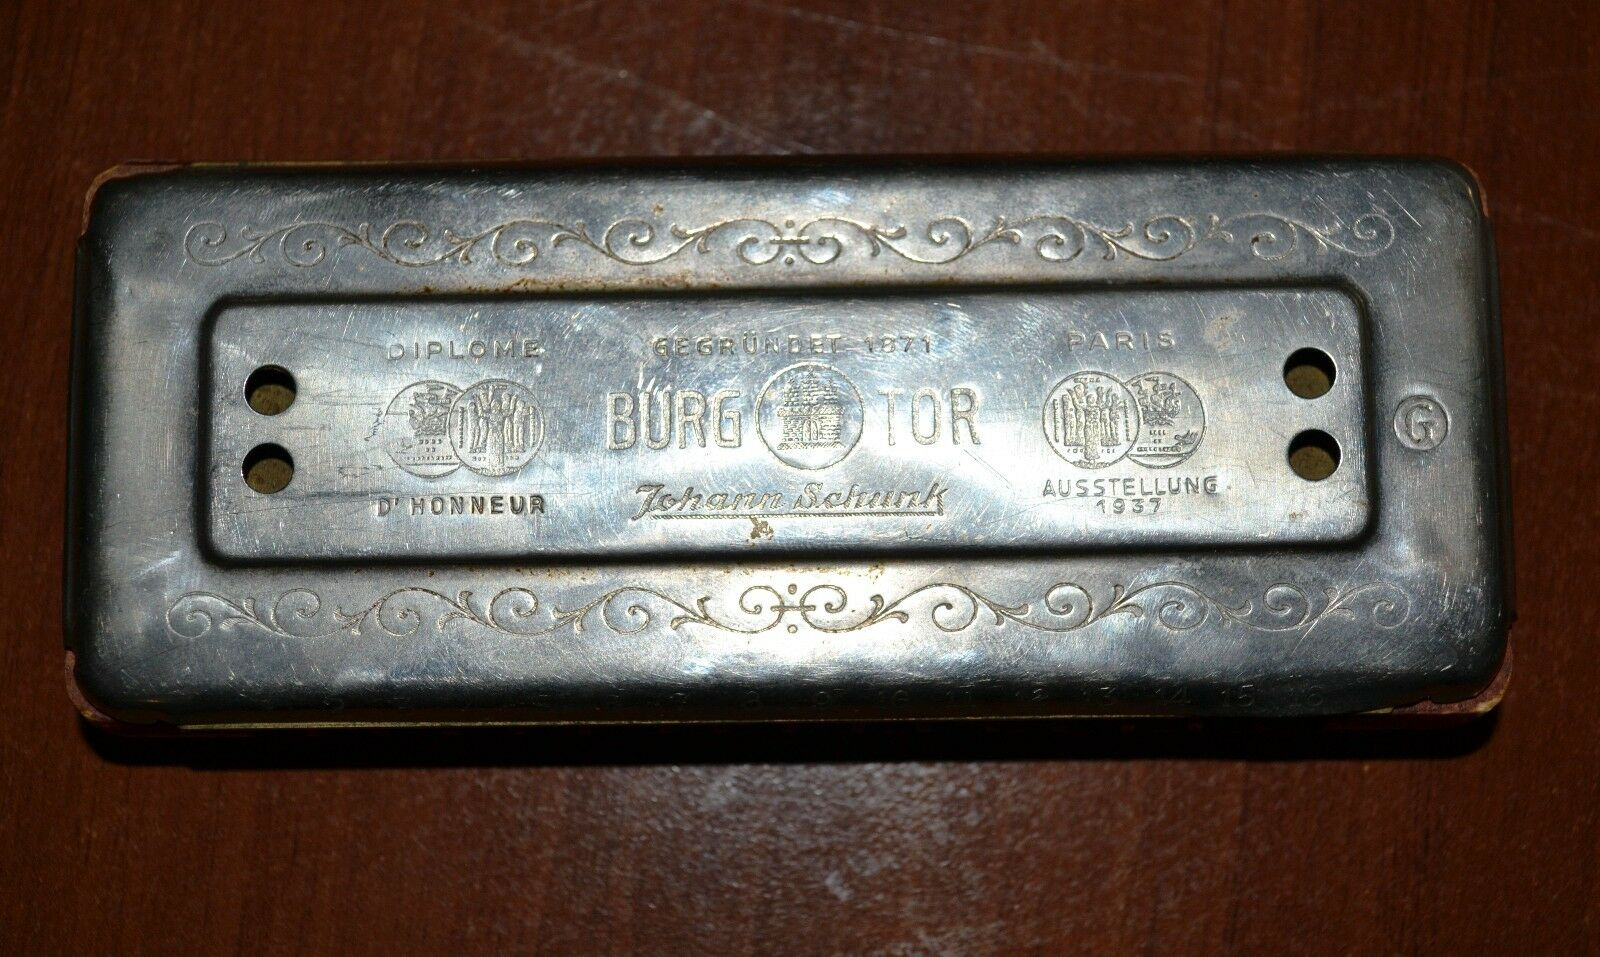 ANTIQUE PARADIESVOGEL HARMONICA, MADE IN GERMANY 1940s